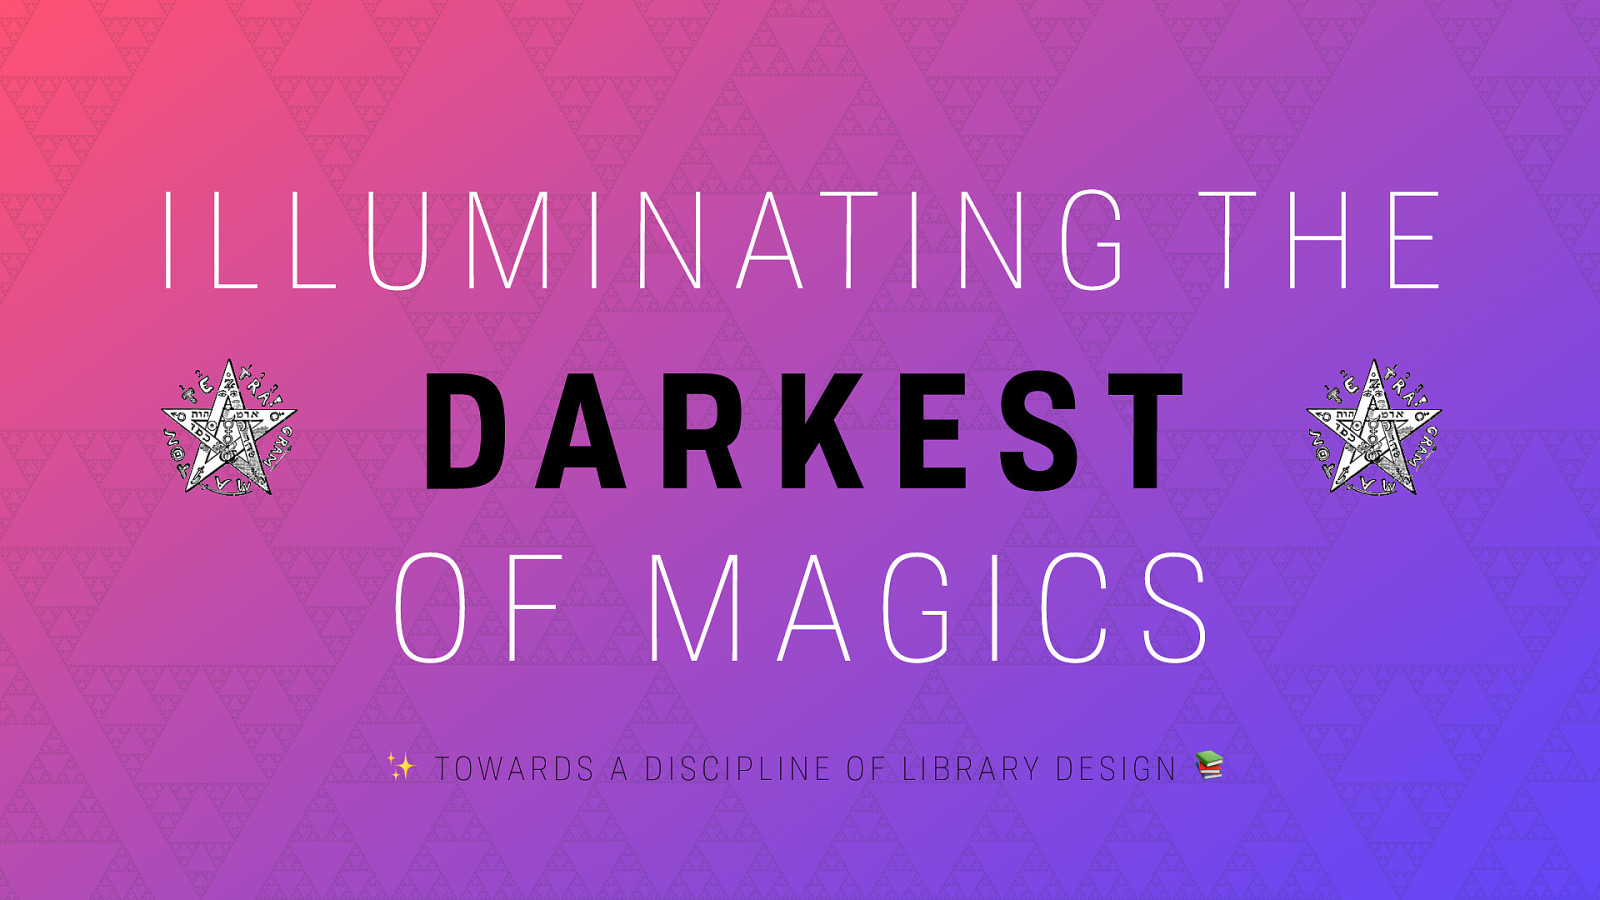 Illuminating the Darkest of Magics: Toward a Disipline of Library Design